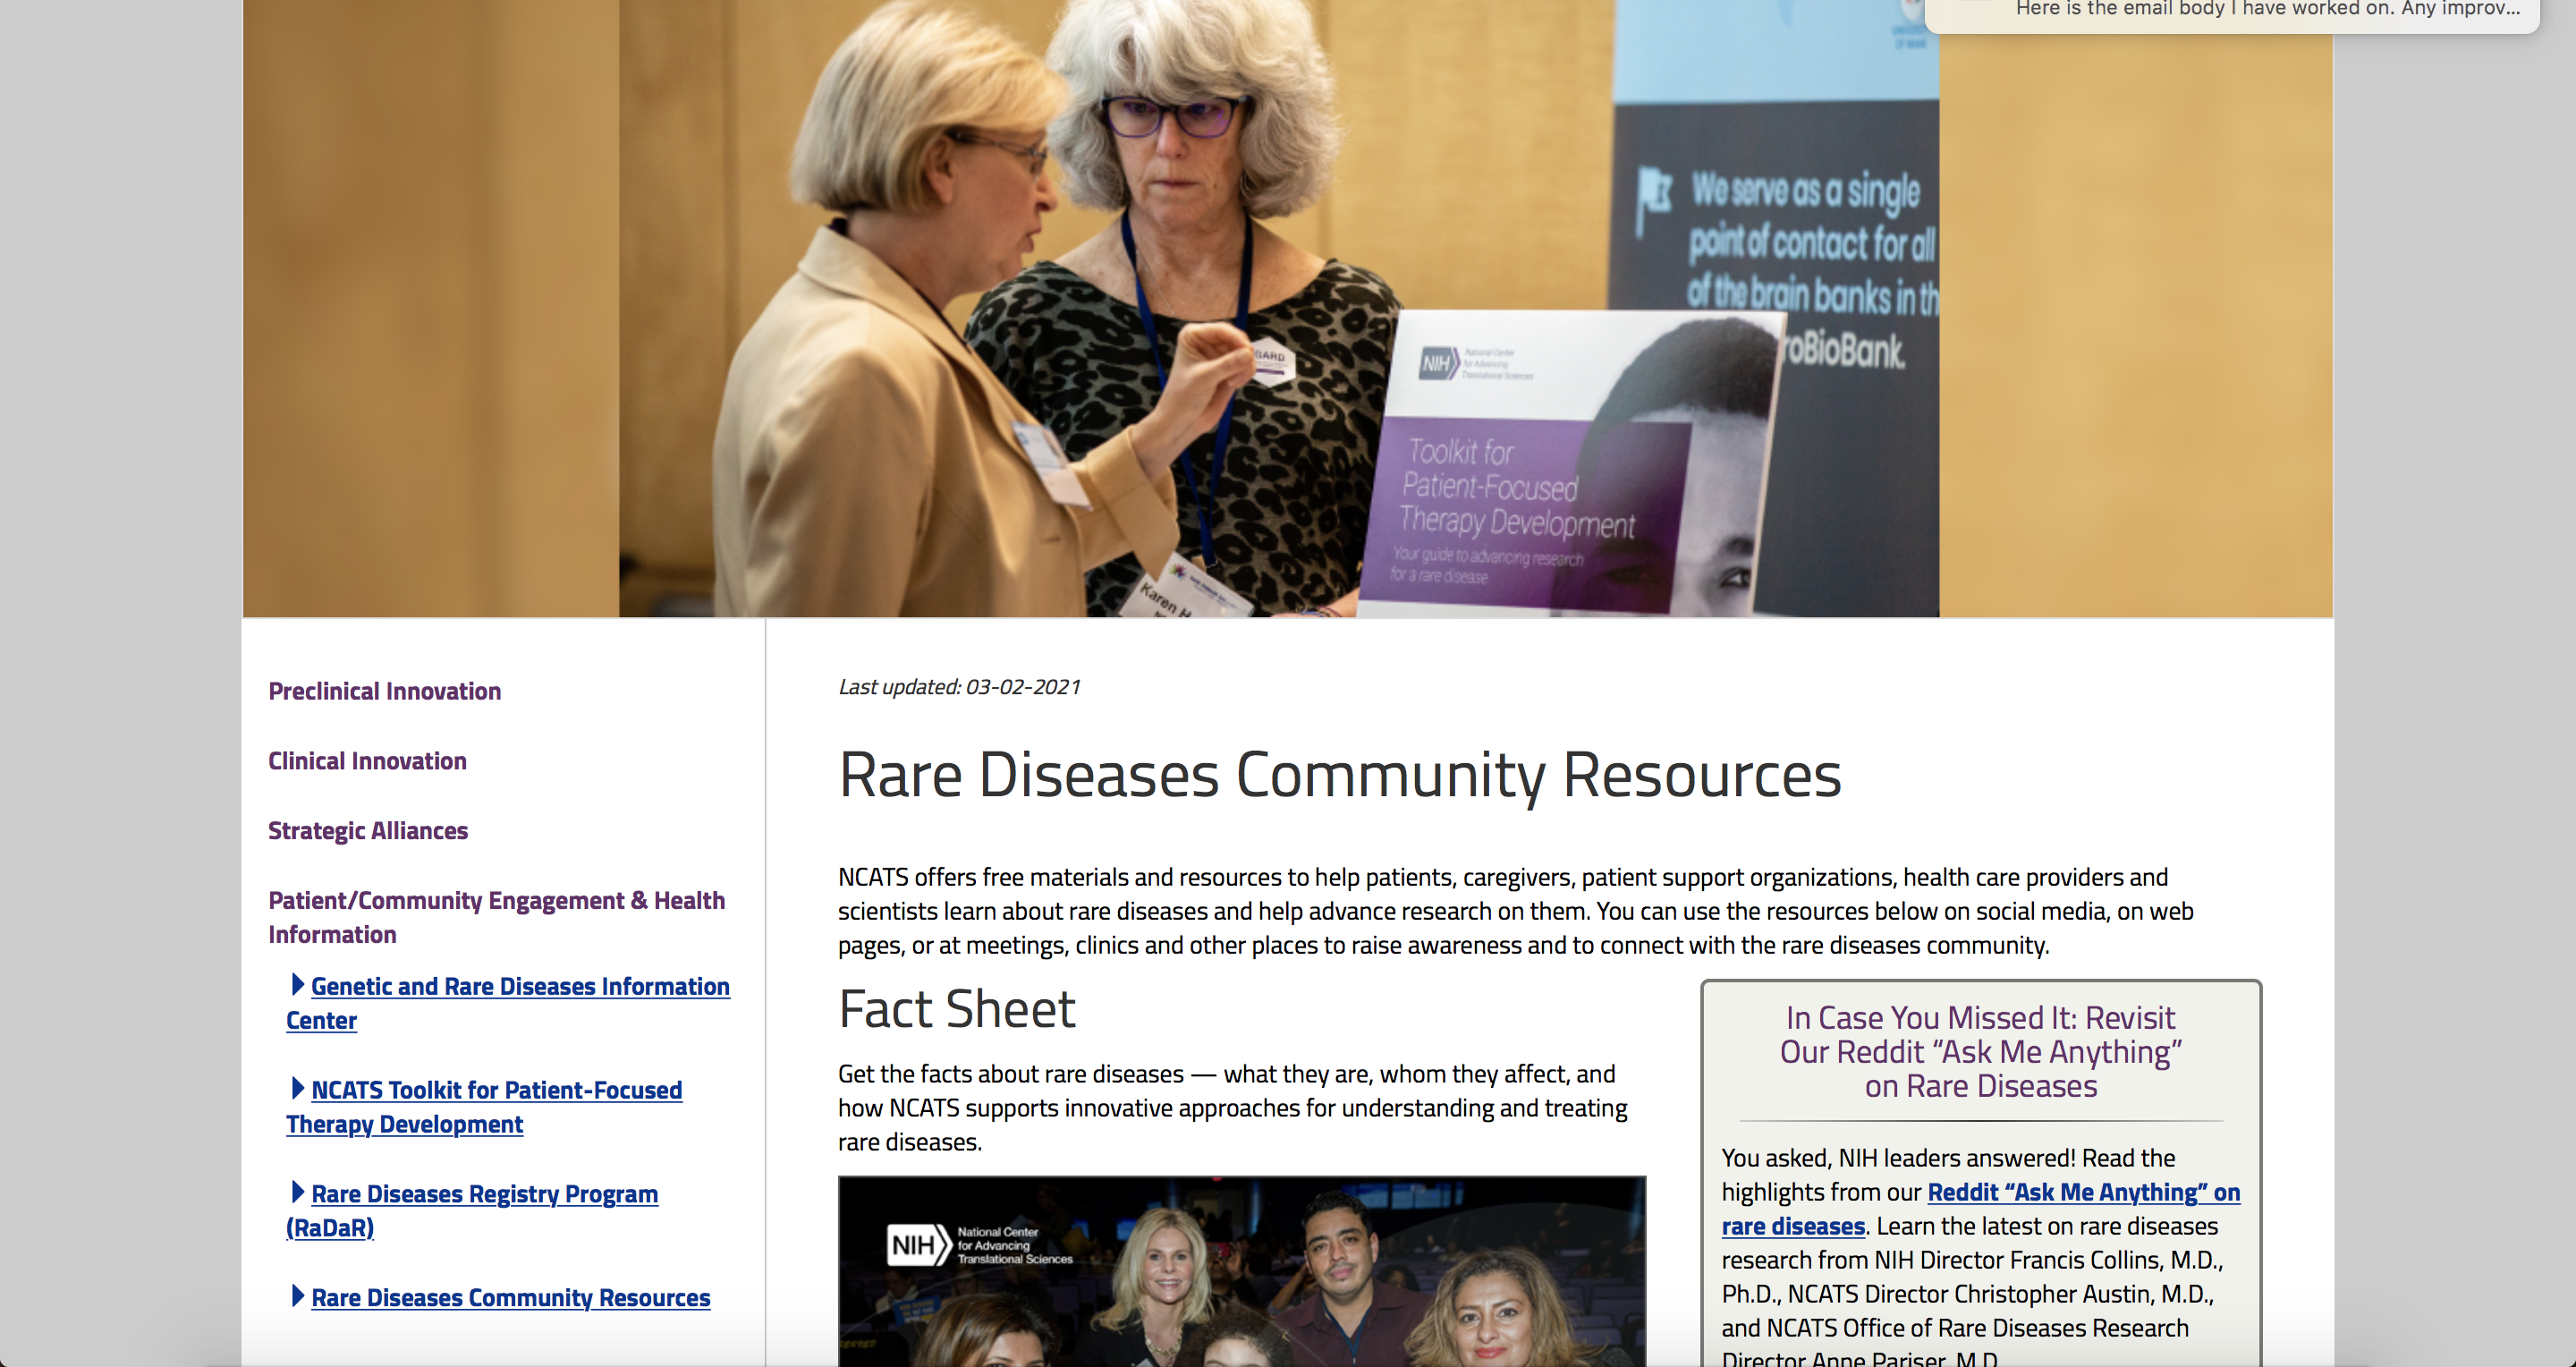 Rare Diseases Community Resources image